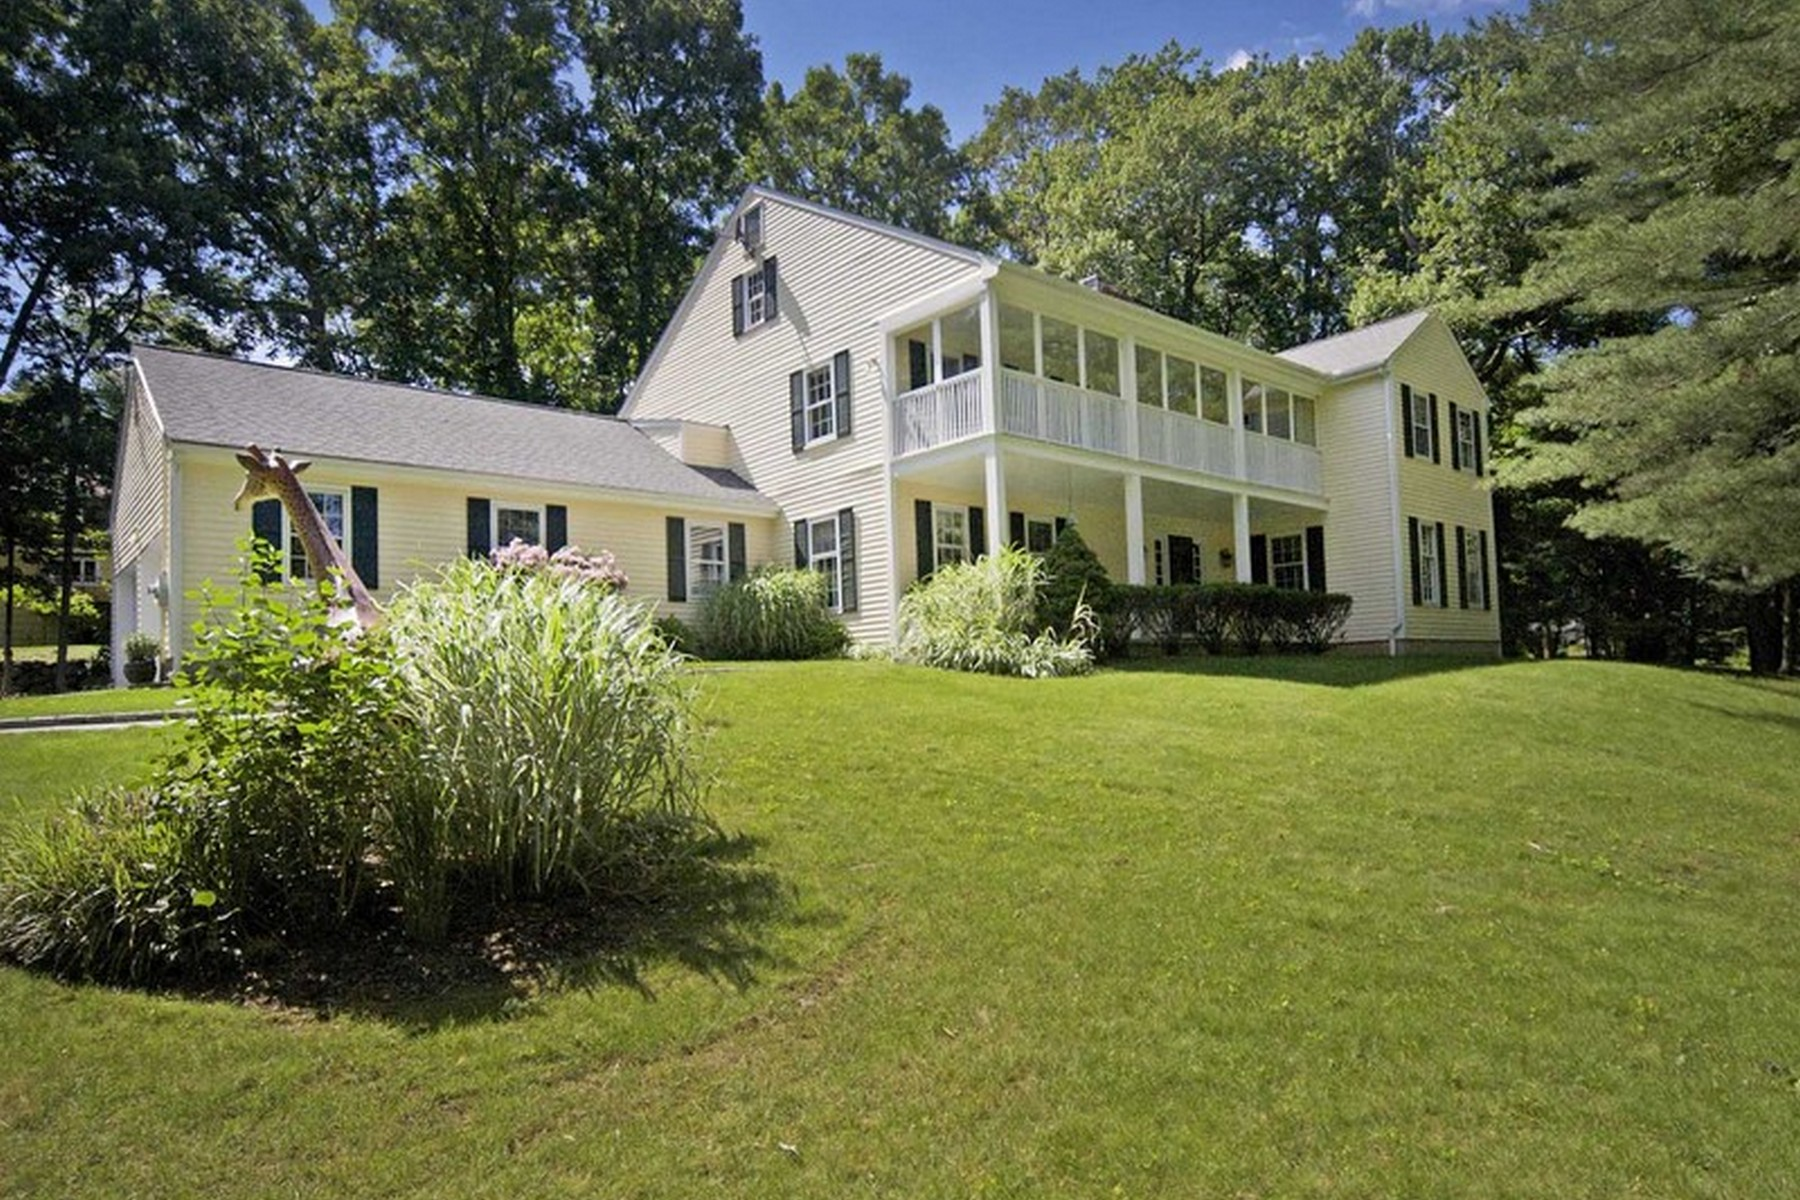 Single Family Home for Sale at 29 Bittersweet Lane Stamford, Connecticut, 06903 United States